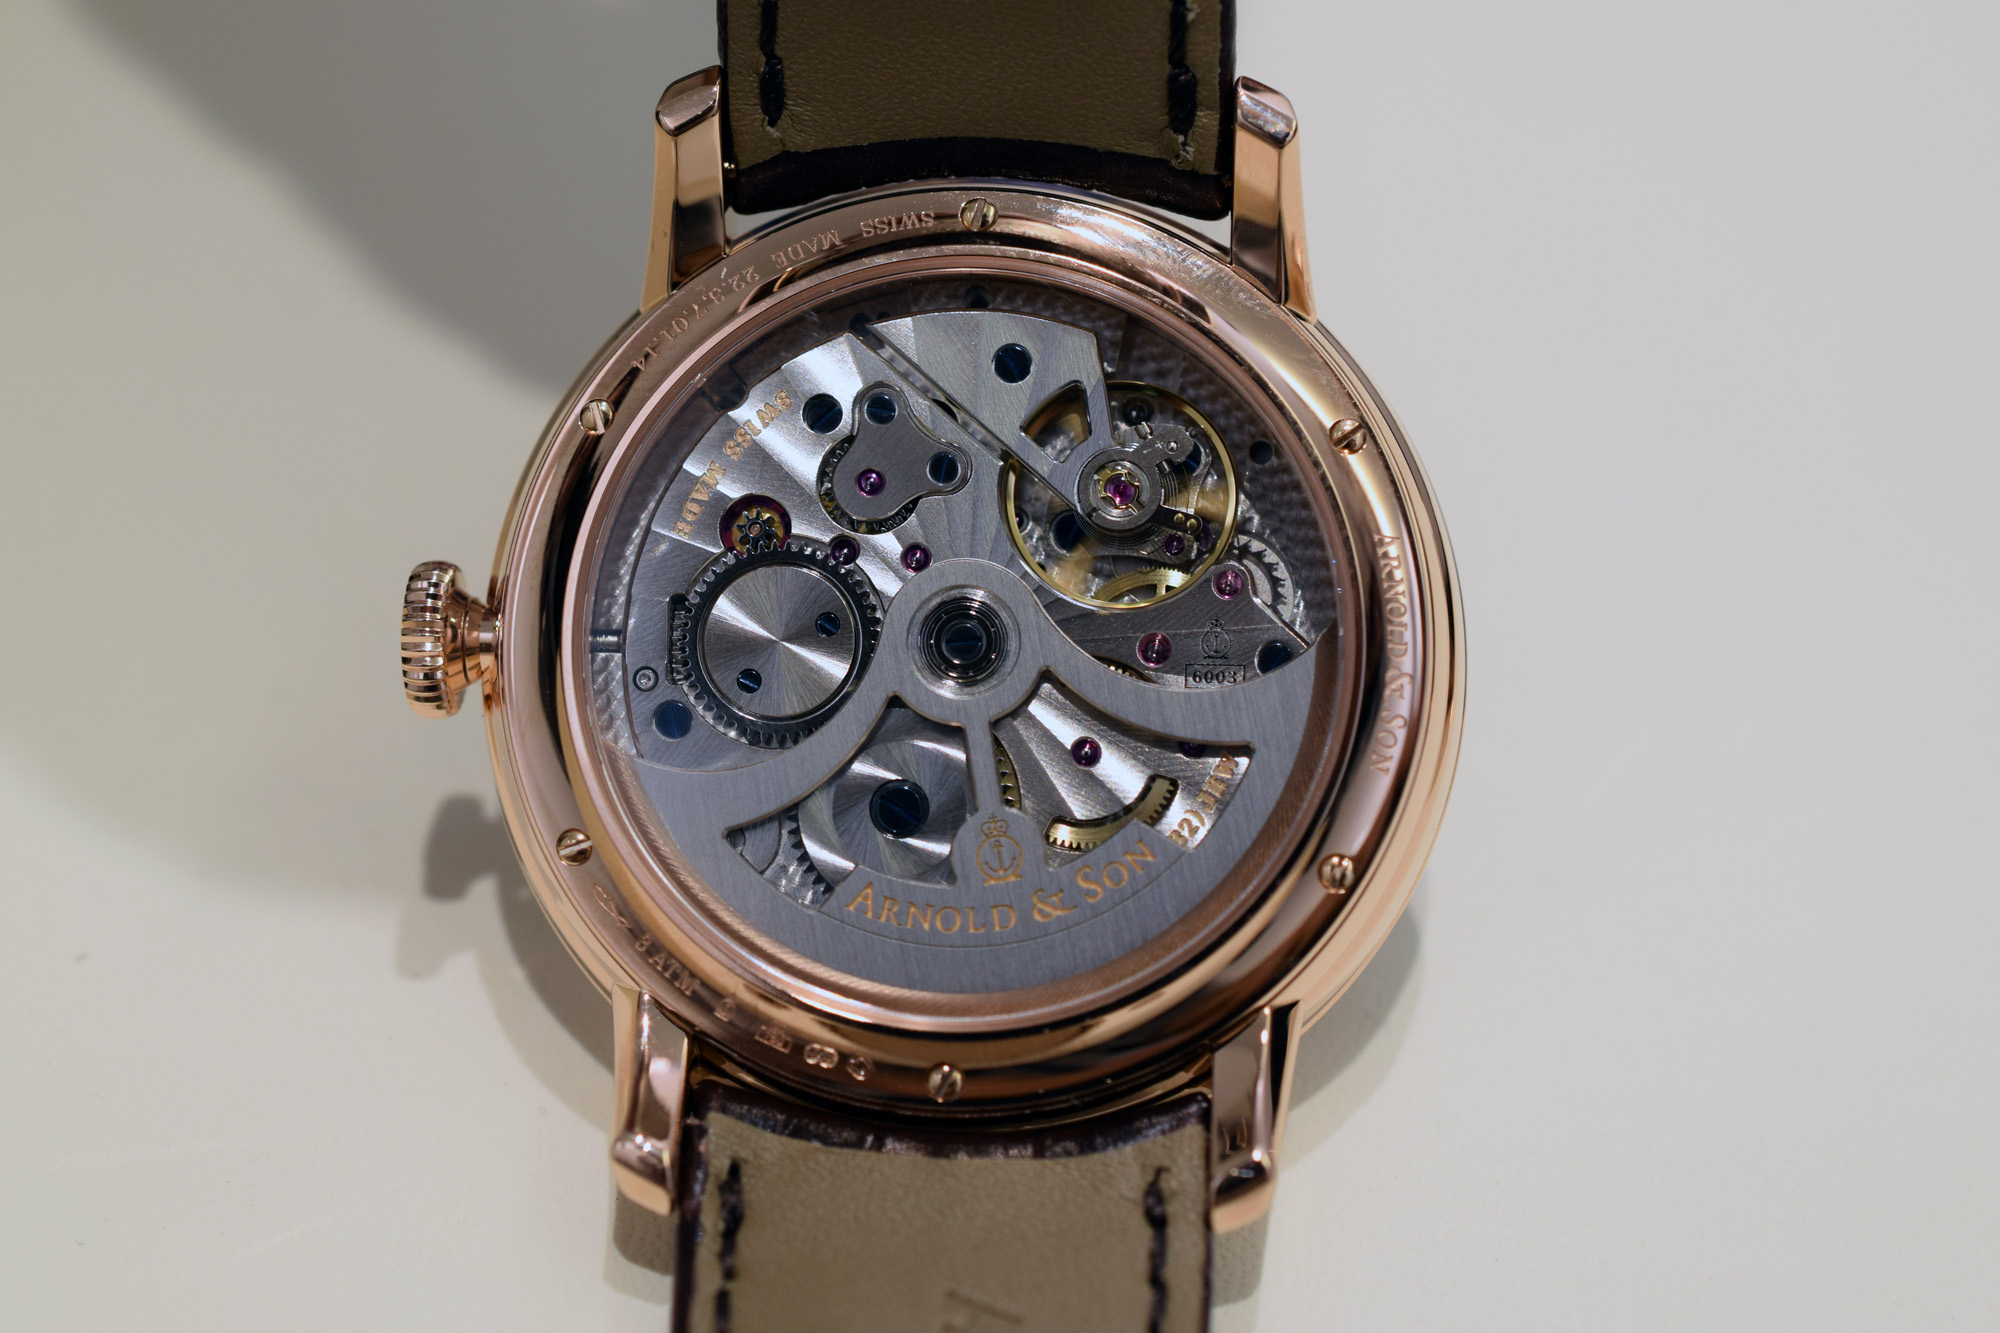 Arnold & Son Dial Side True Beat 250th Anniversary Edition - Caseback